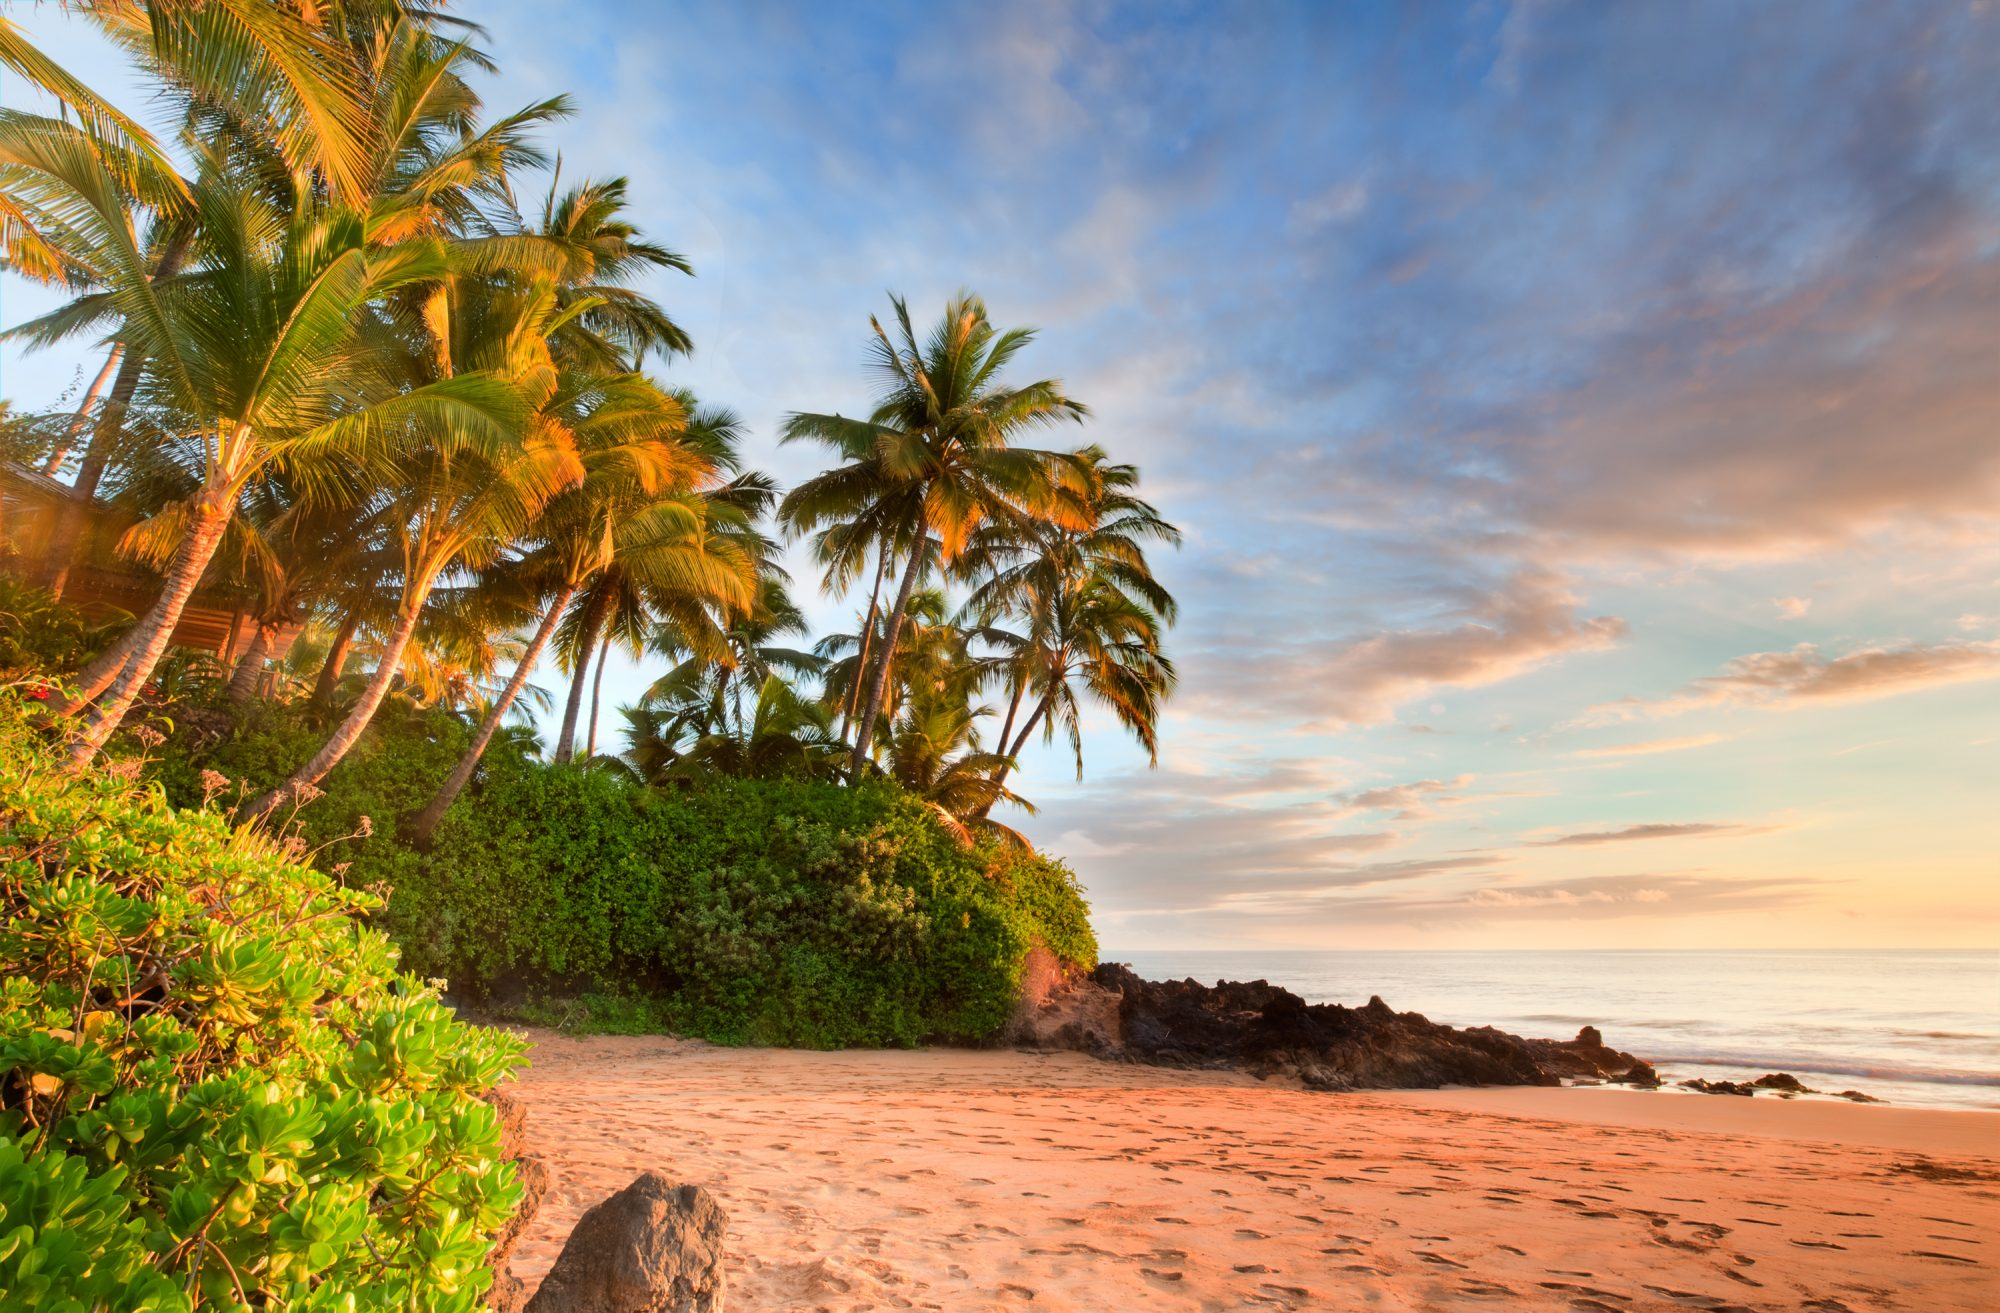 Grab Your Girls: Now You Can Fly to Hawaii for $344 Round-Trip